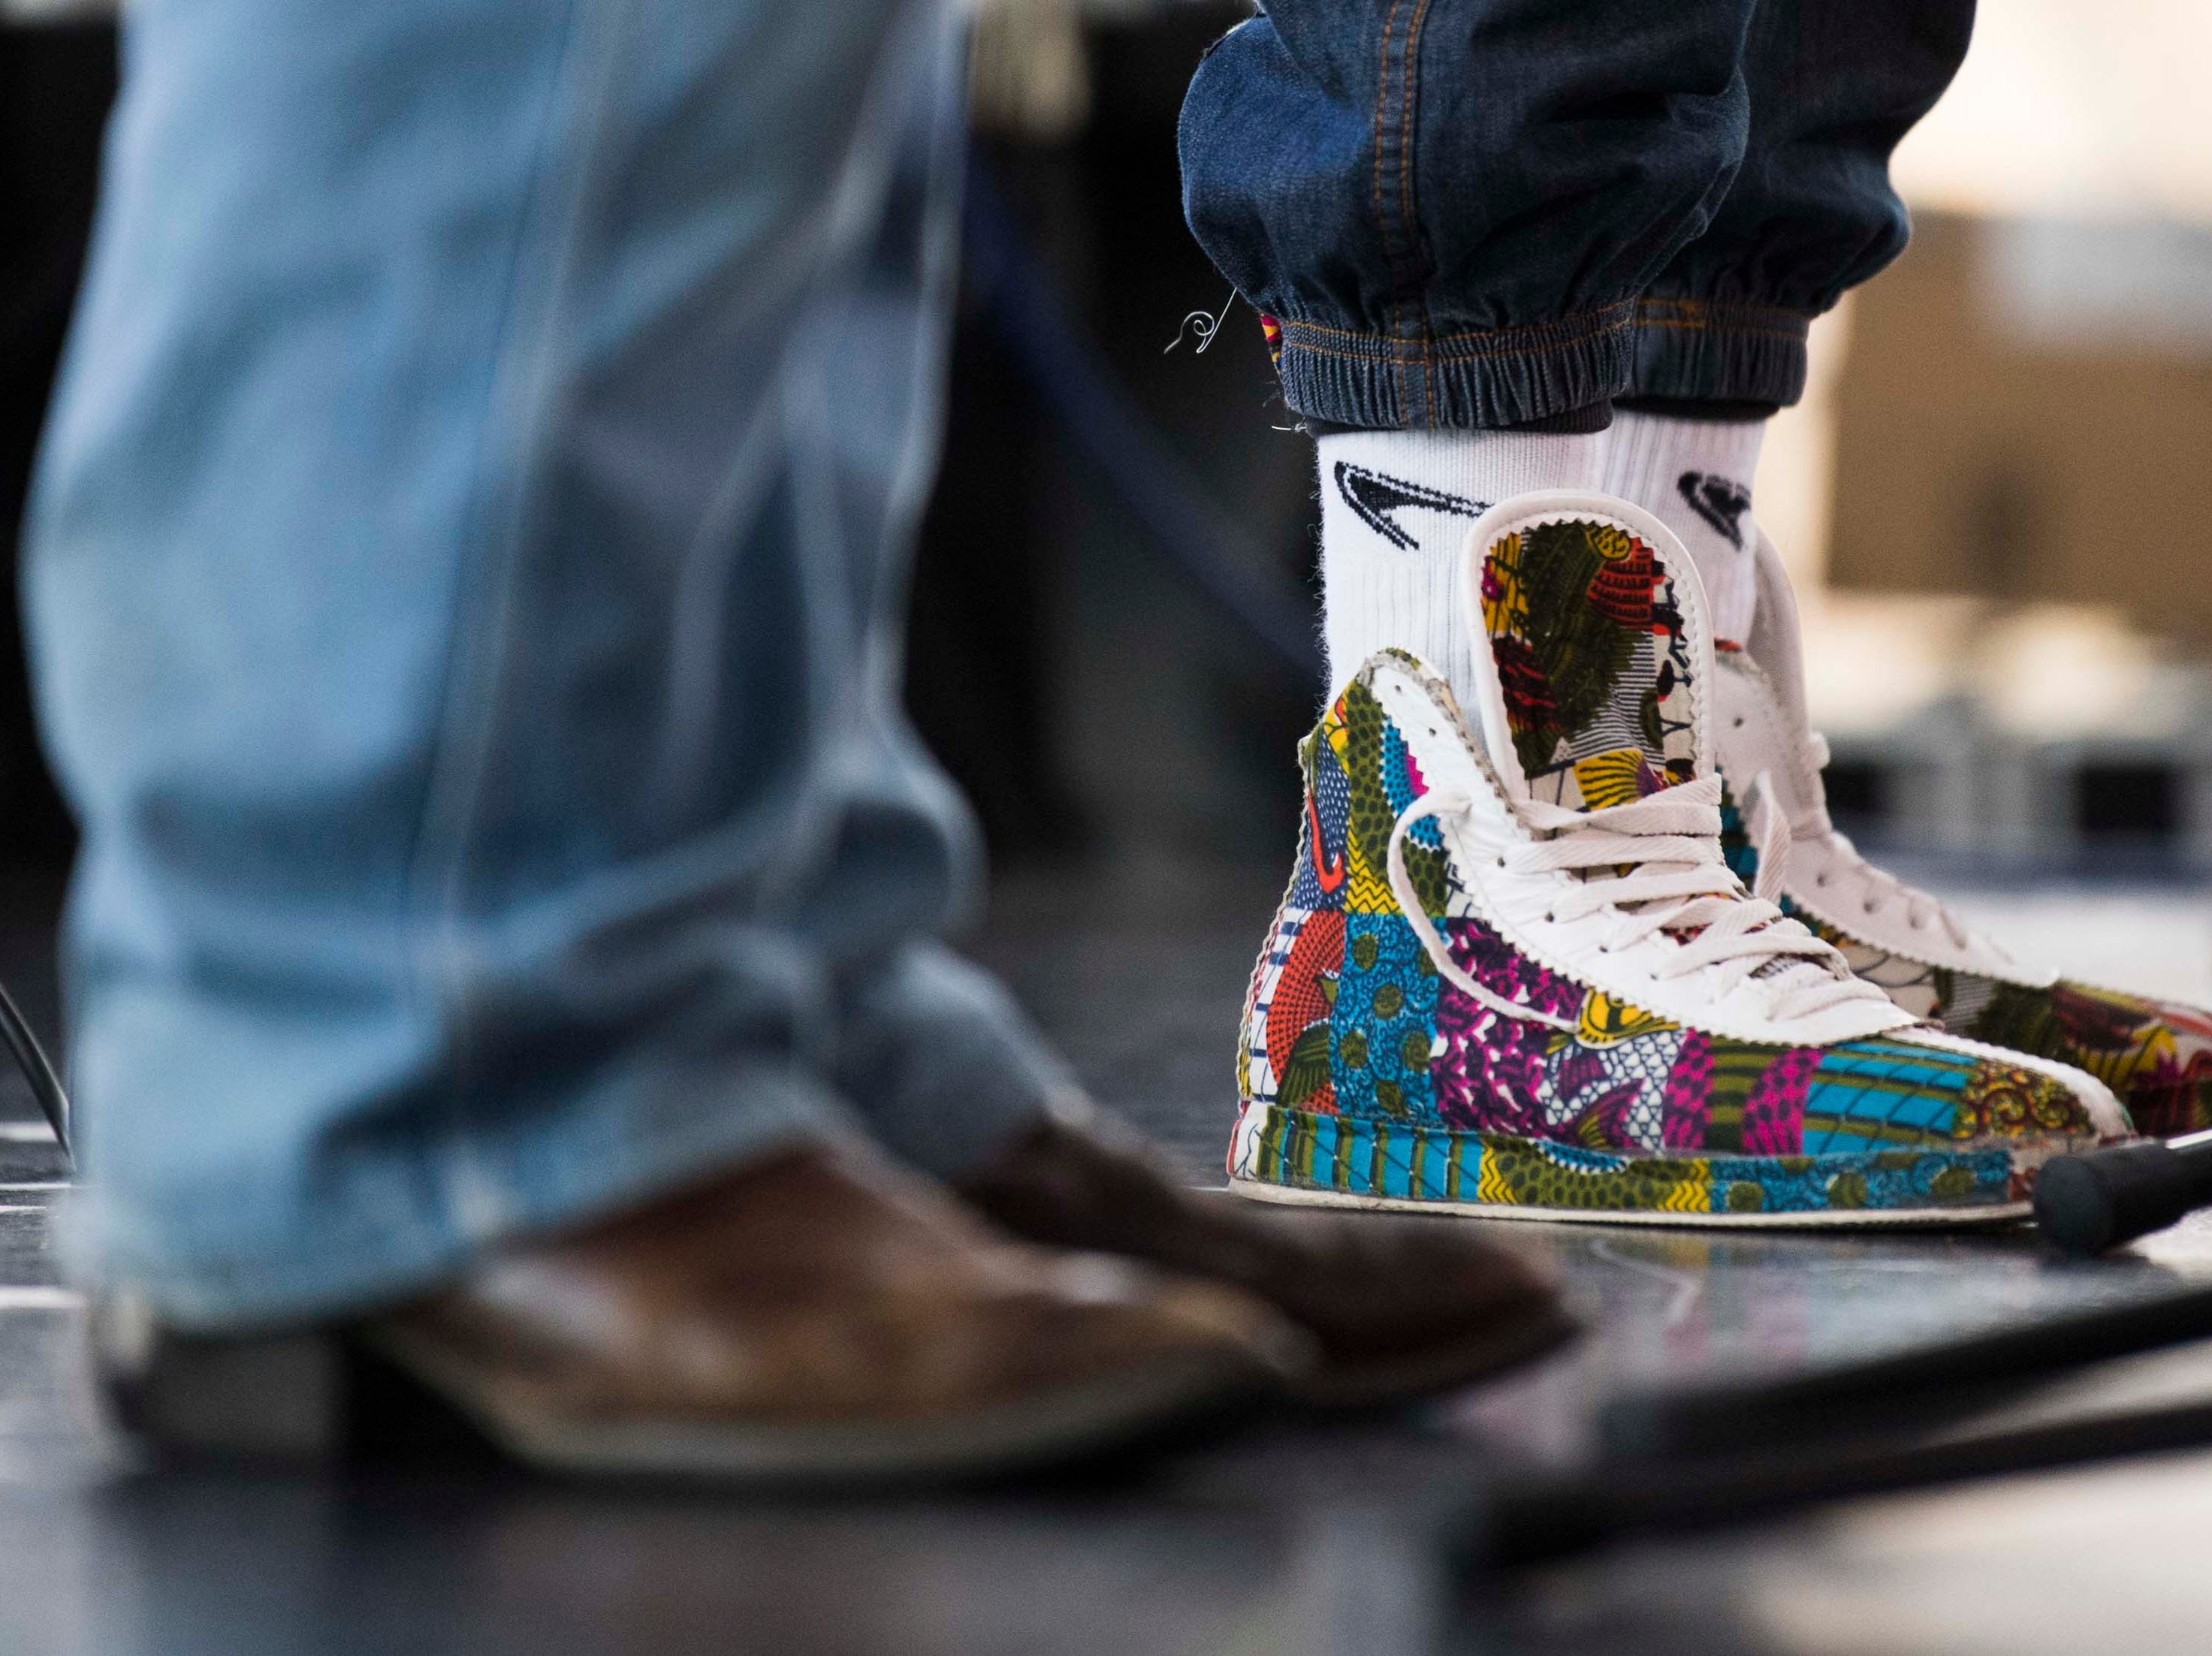 Unique shoes are seen on stage at the Big Ears Festival, in the Knoxville Museum of Art in Knoxville Thursday, March 21, 2019.